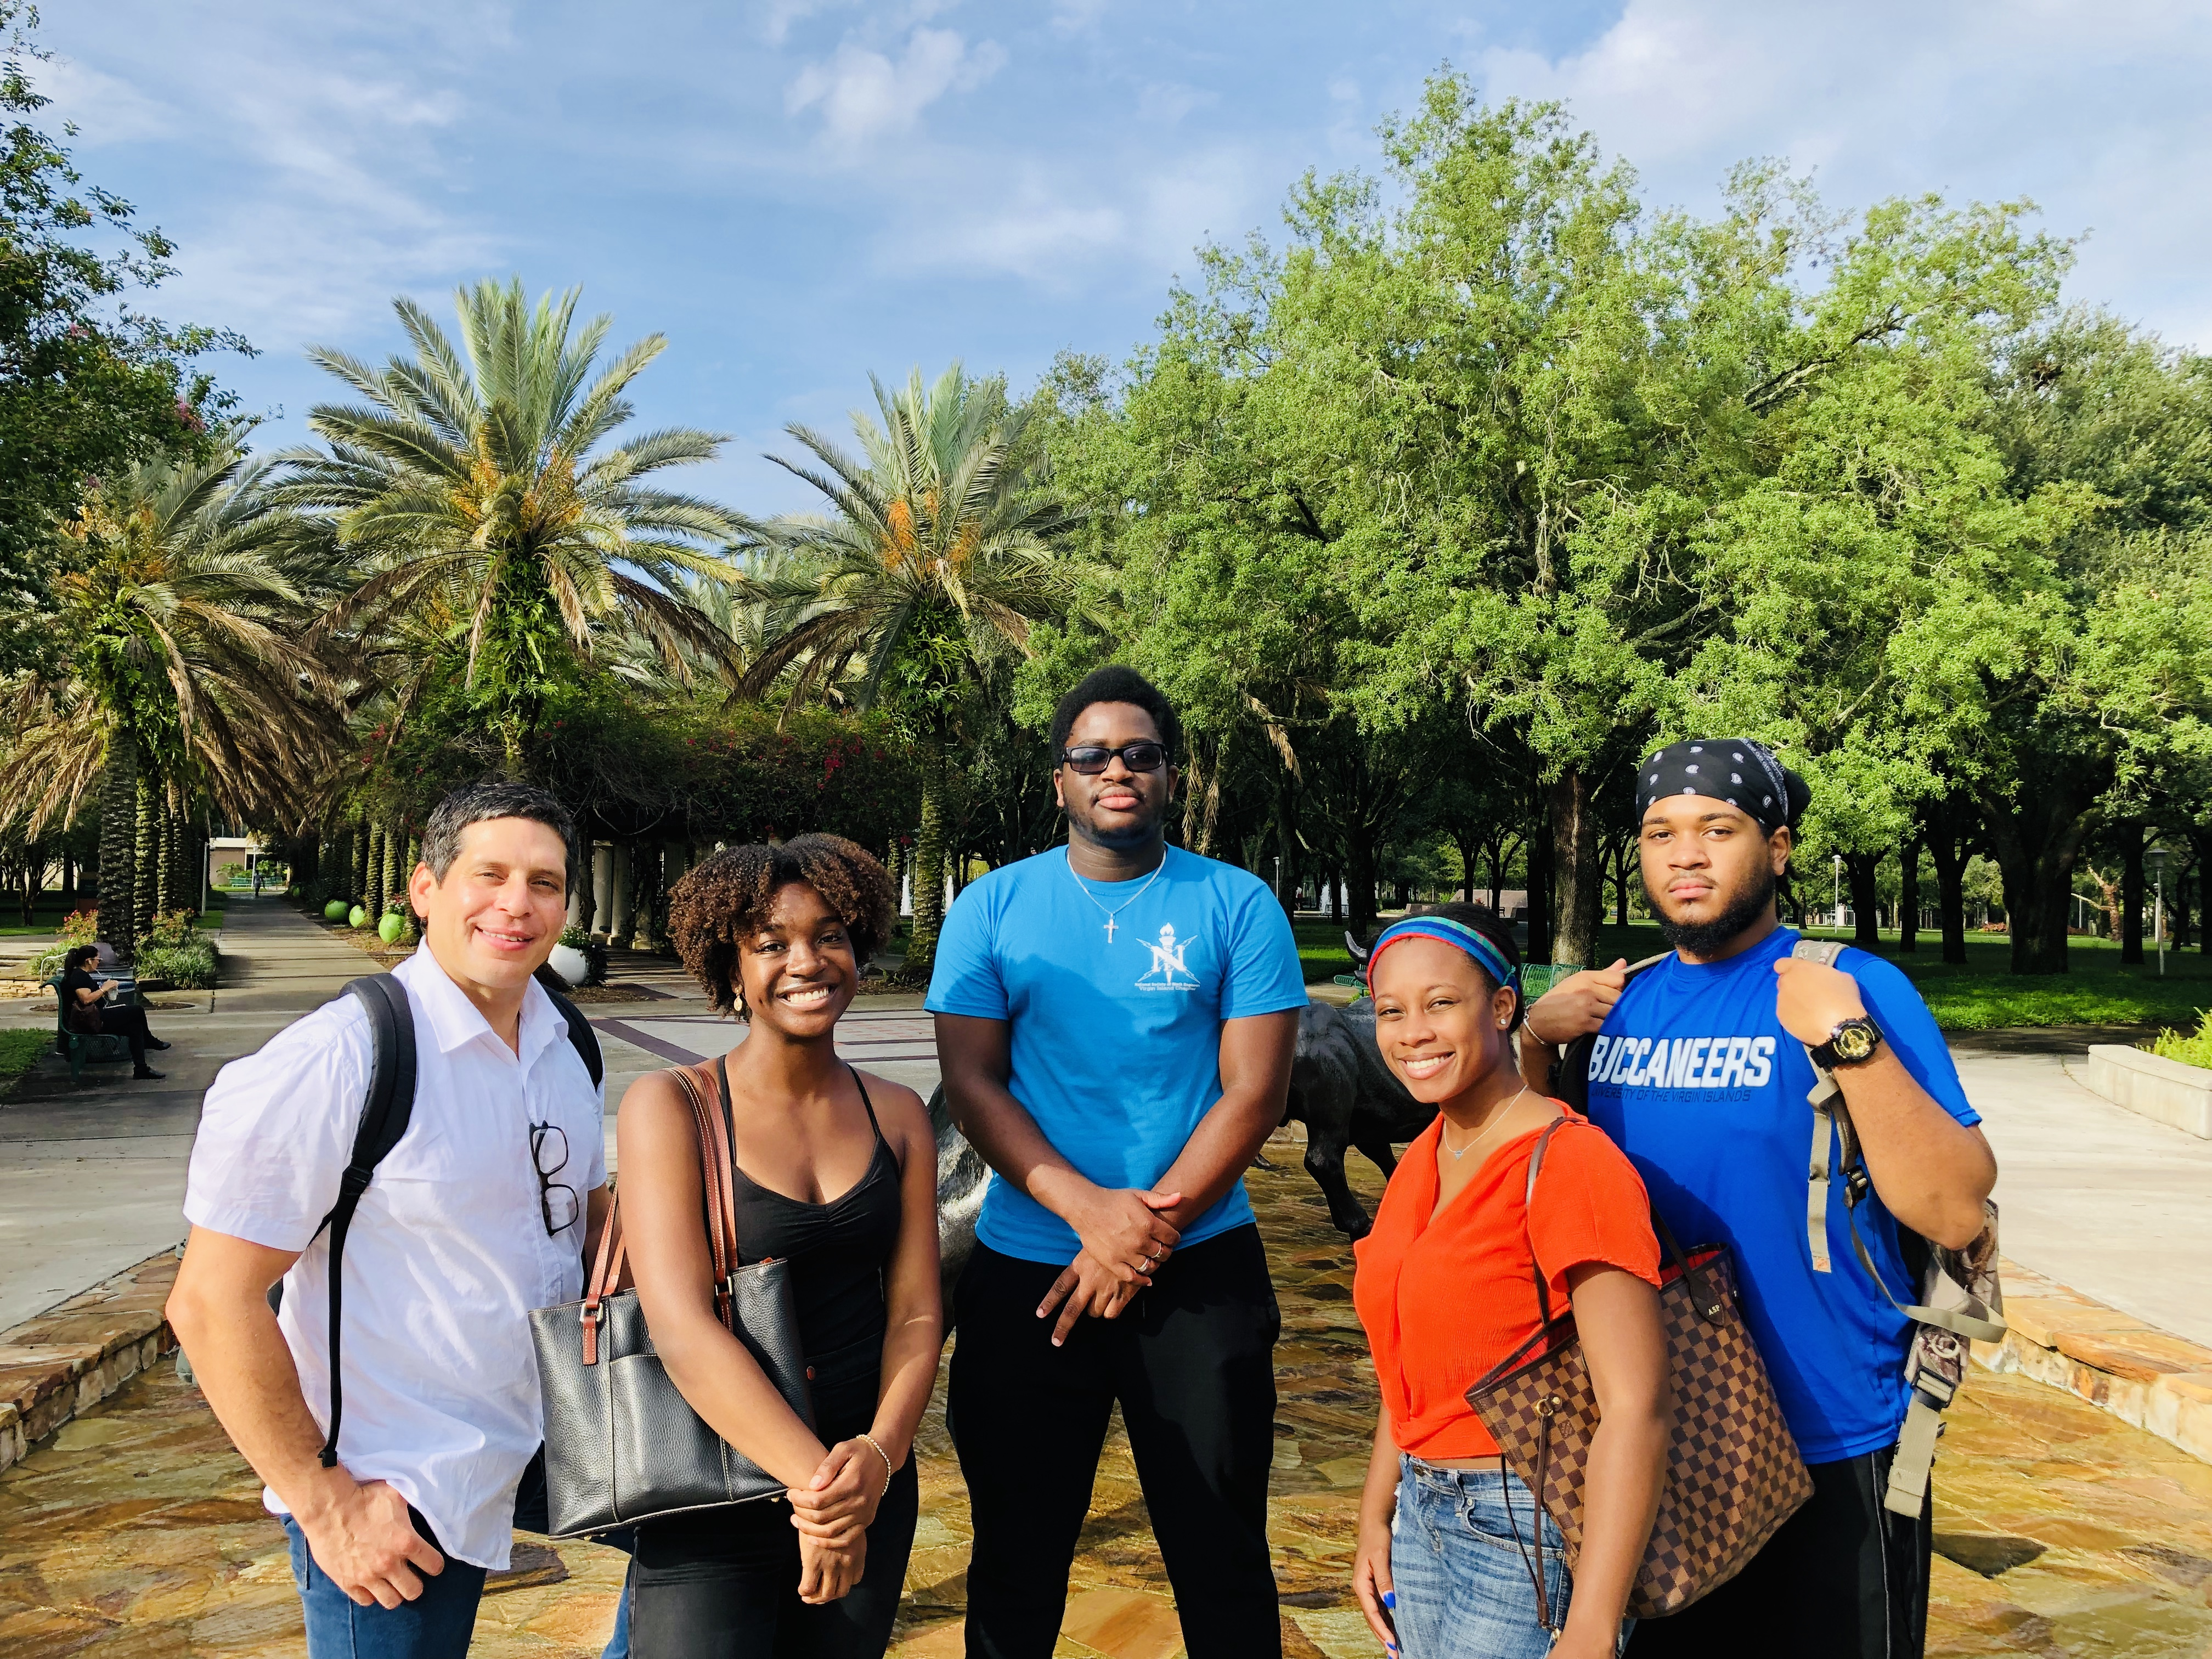 REU Participants visited USF Tampa explored the USF Tampa campus as part of their orientation for the 10-week REU program, sponsored by the National Science Foundation. (left to right: Richard Rivera, Jenelle DeVry, Tione Grant, Alexis Peterson, and Angel Cedeño)